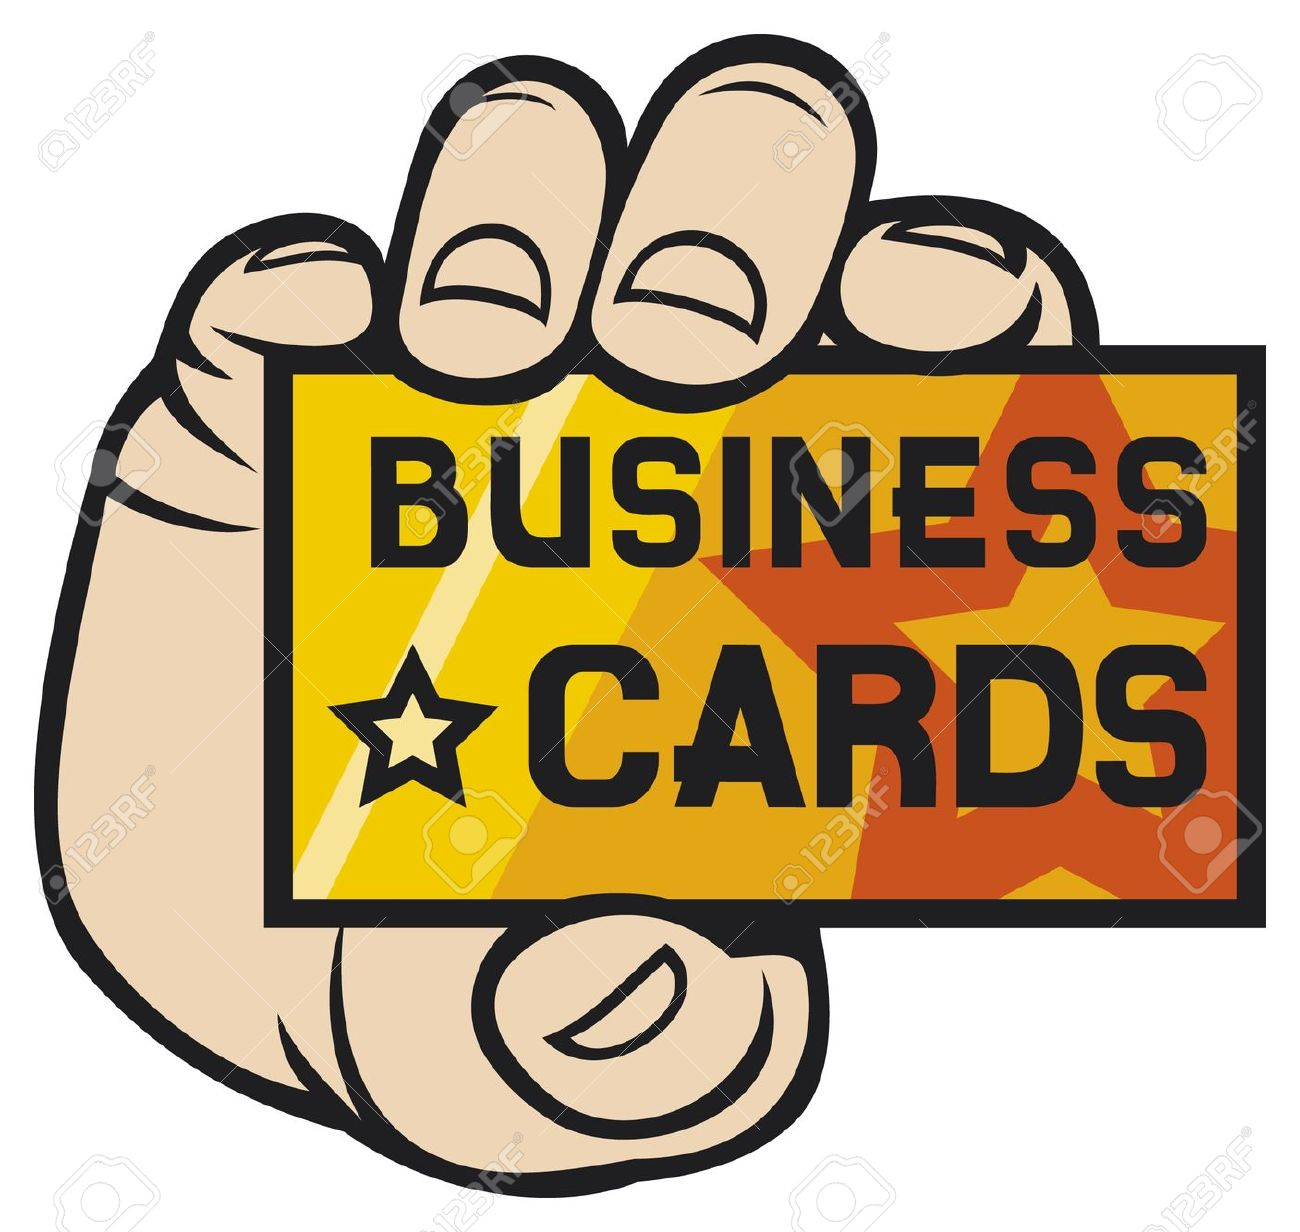 hight resolution of hand holding business card clipart for business cards